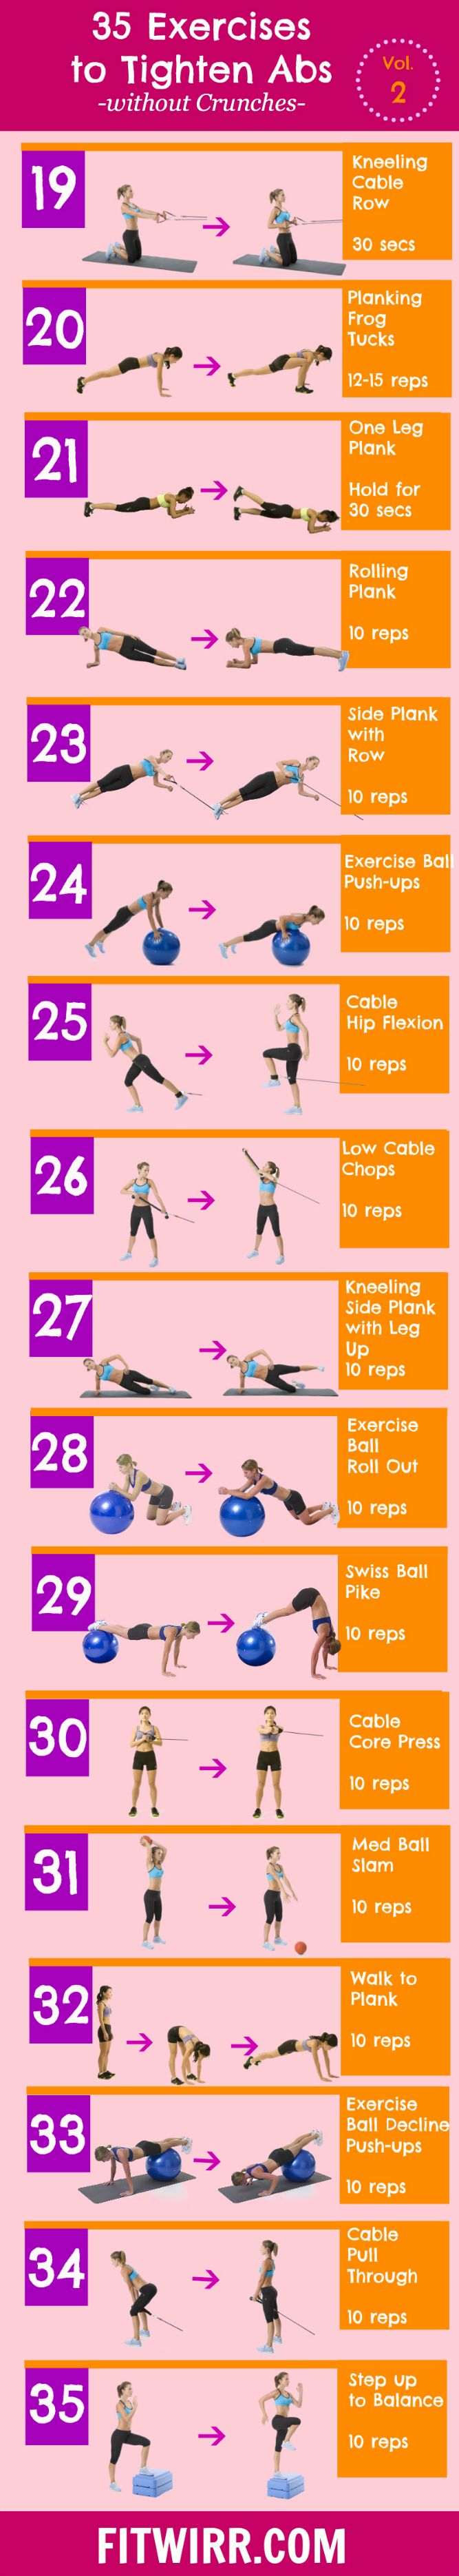 35 Different Core Workouts to a Lean, Toned Stomach without Crunches - fitwirr.com